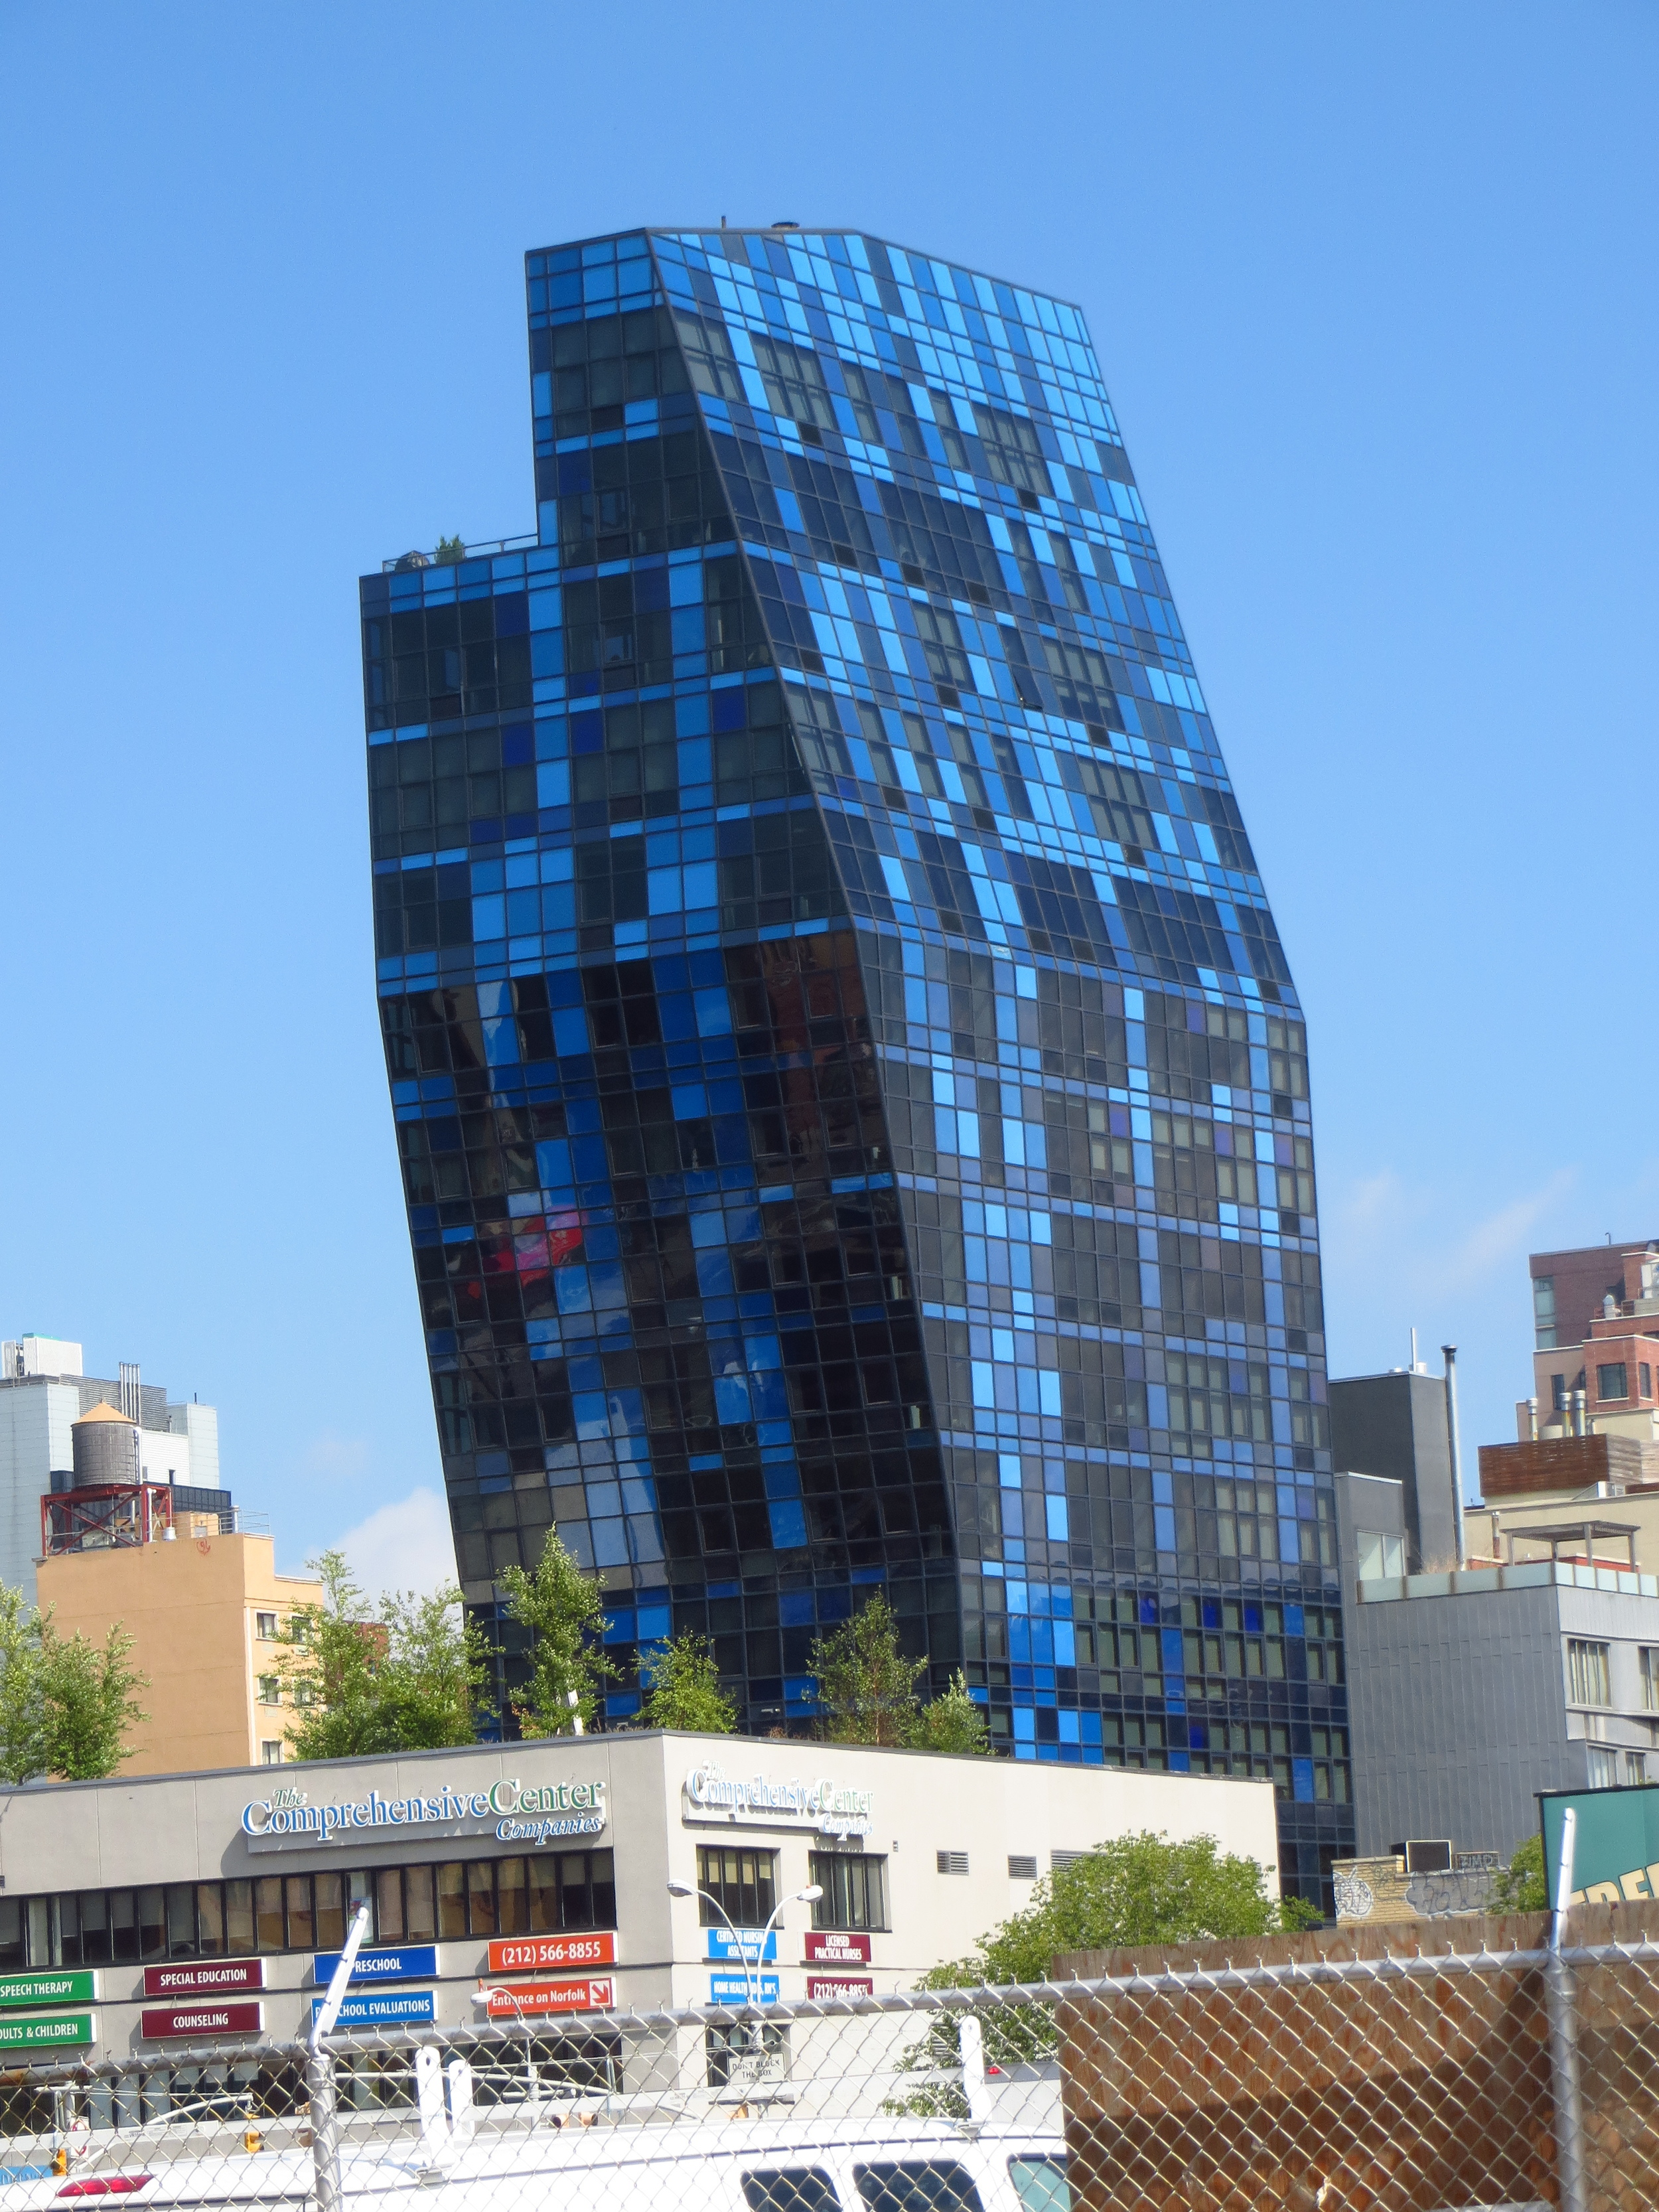 Another cool building